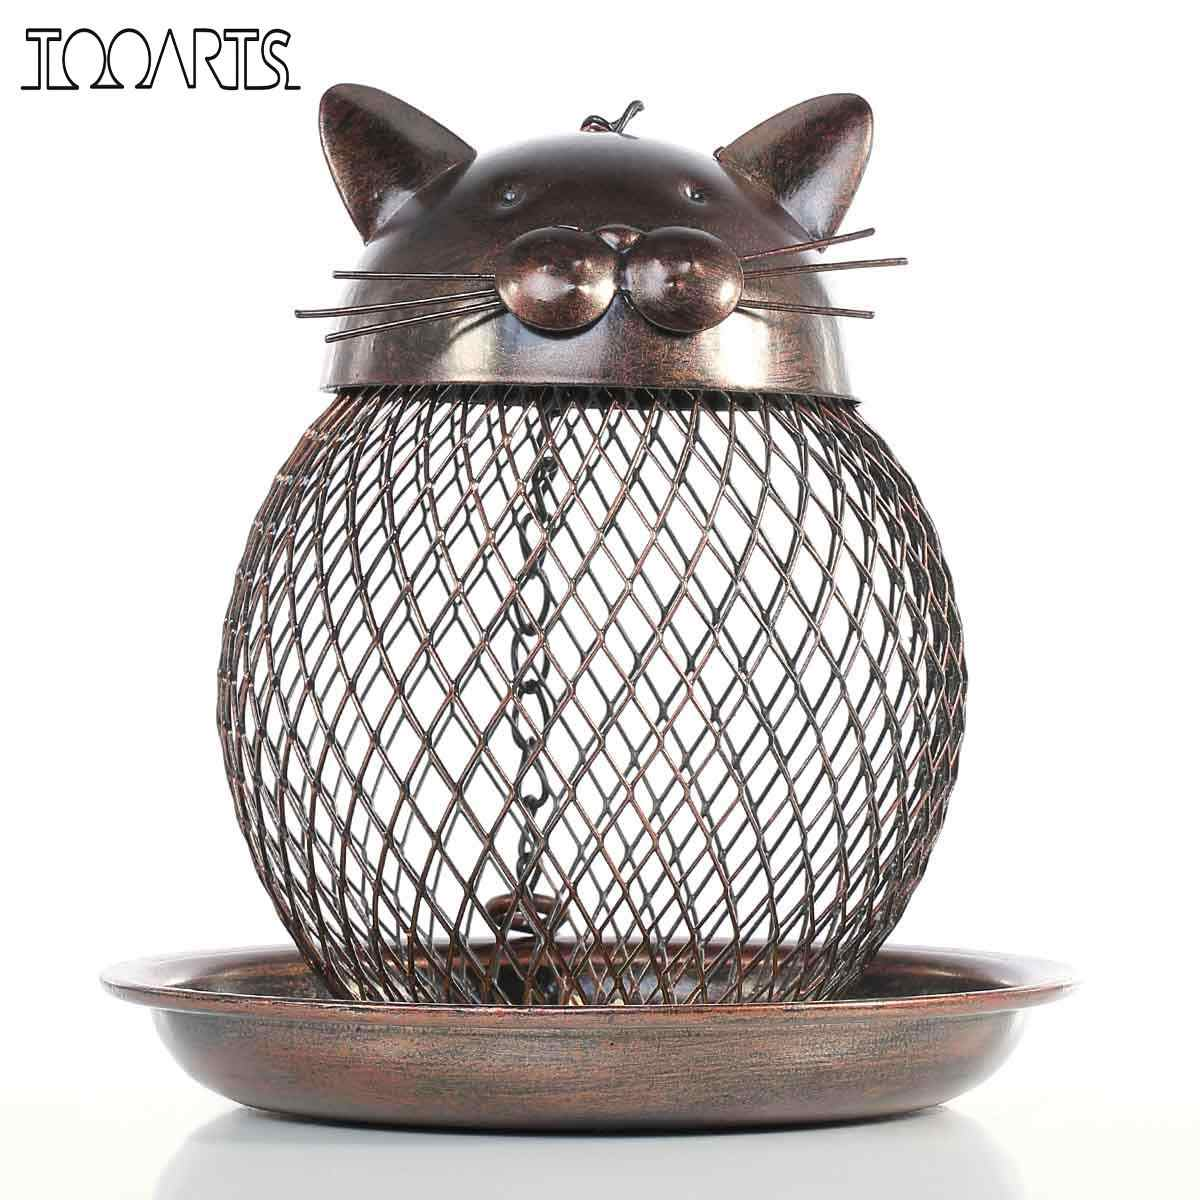 Tooarts Cat Shaped Bird Feeder Cat Shaped Vintage Handmade Outdoor Decoration Villa Garden Decoration Hanging Style Cast Metal